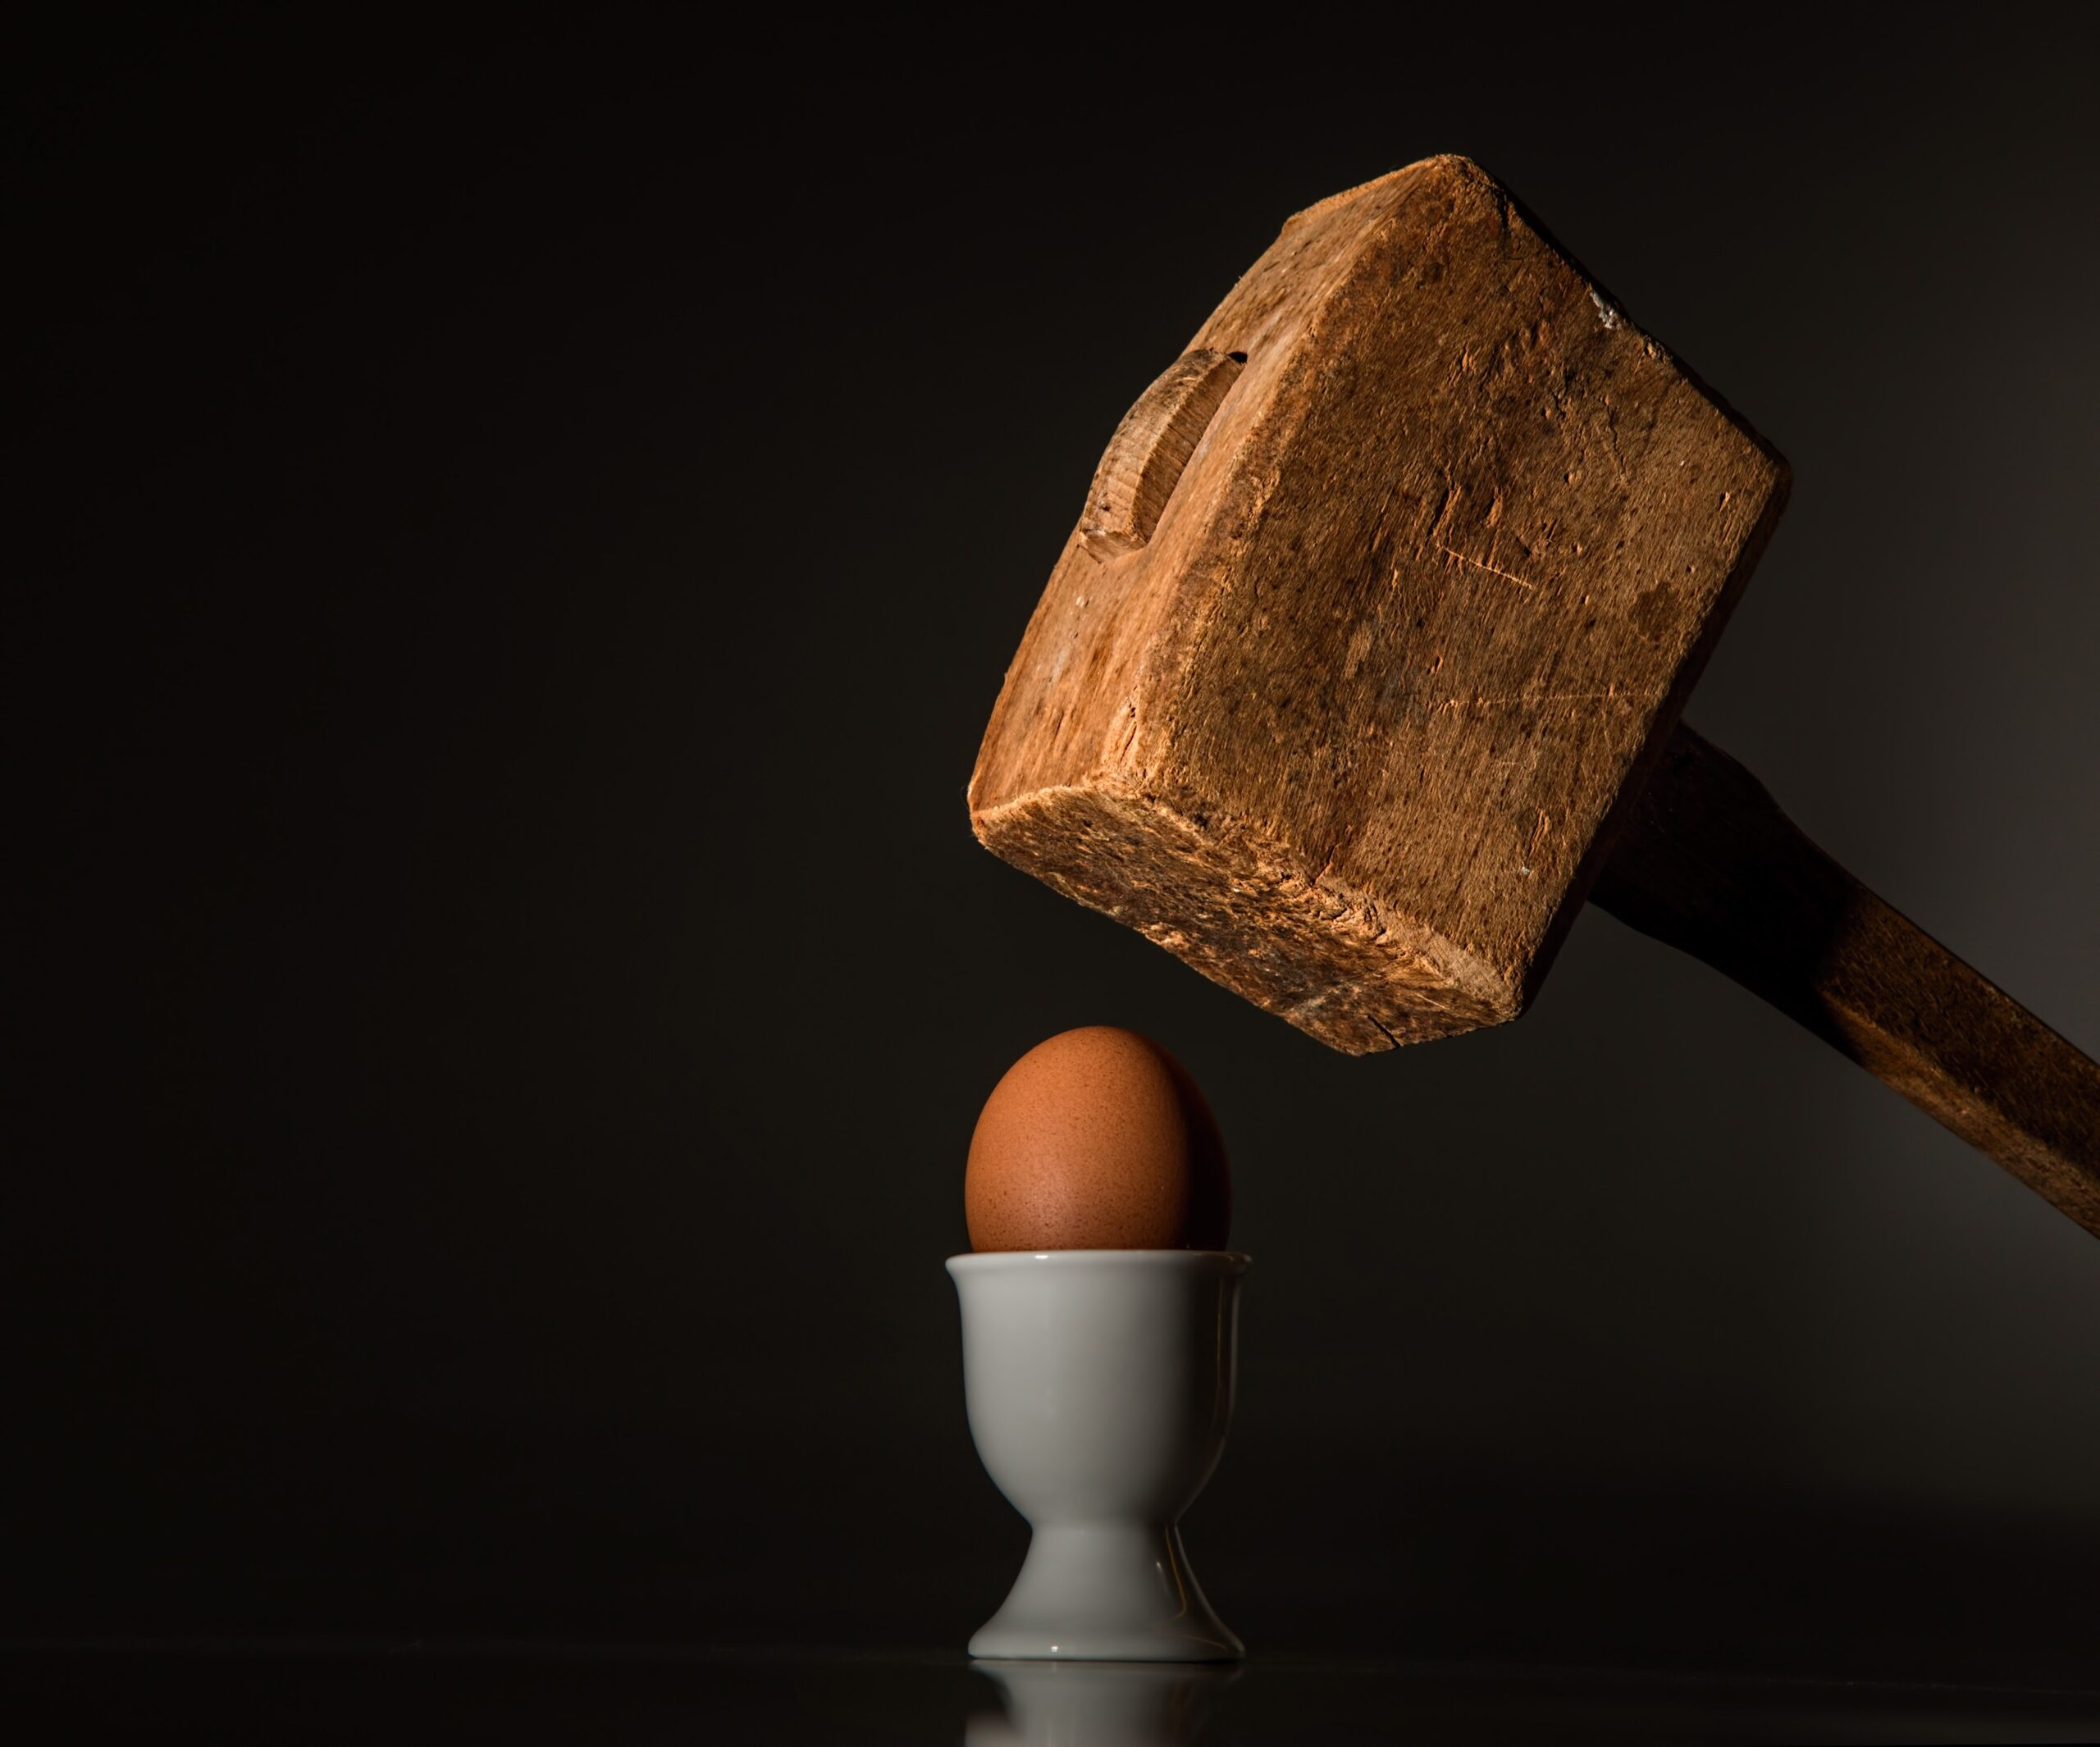 The Force of a Mallet onto an Egg